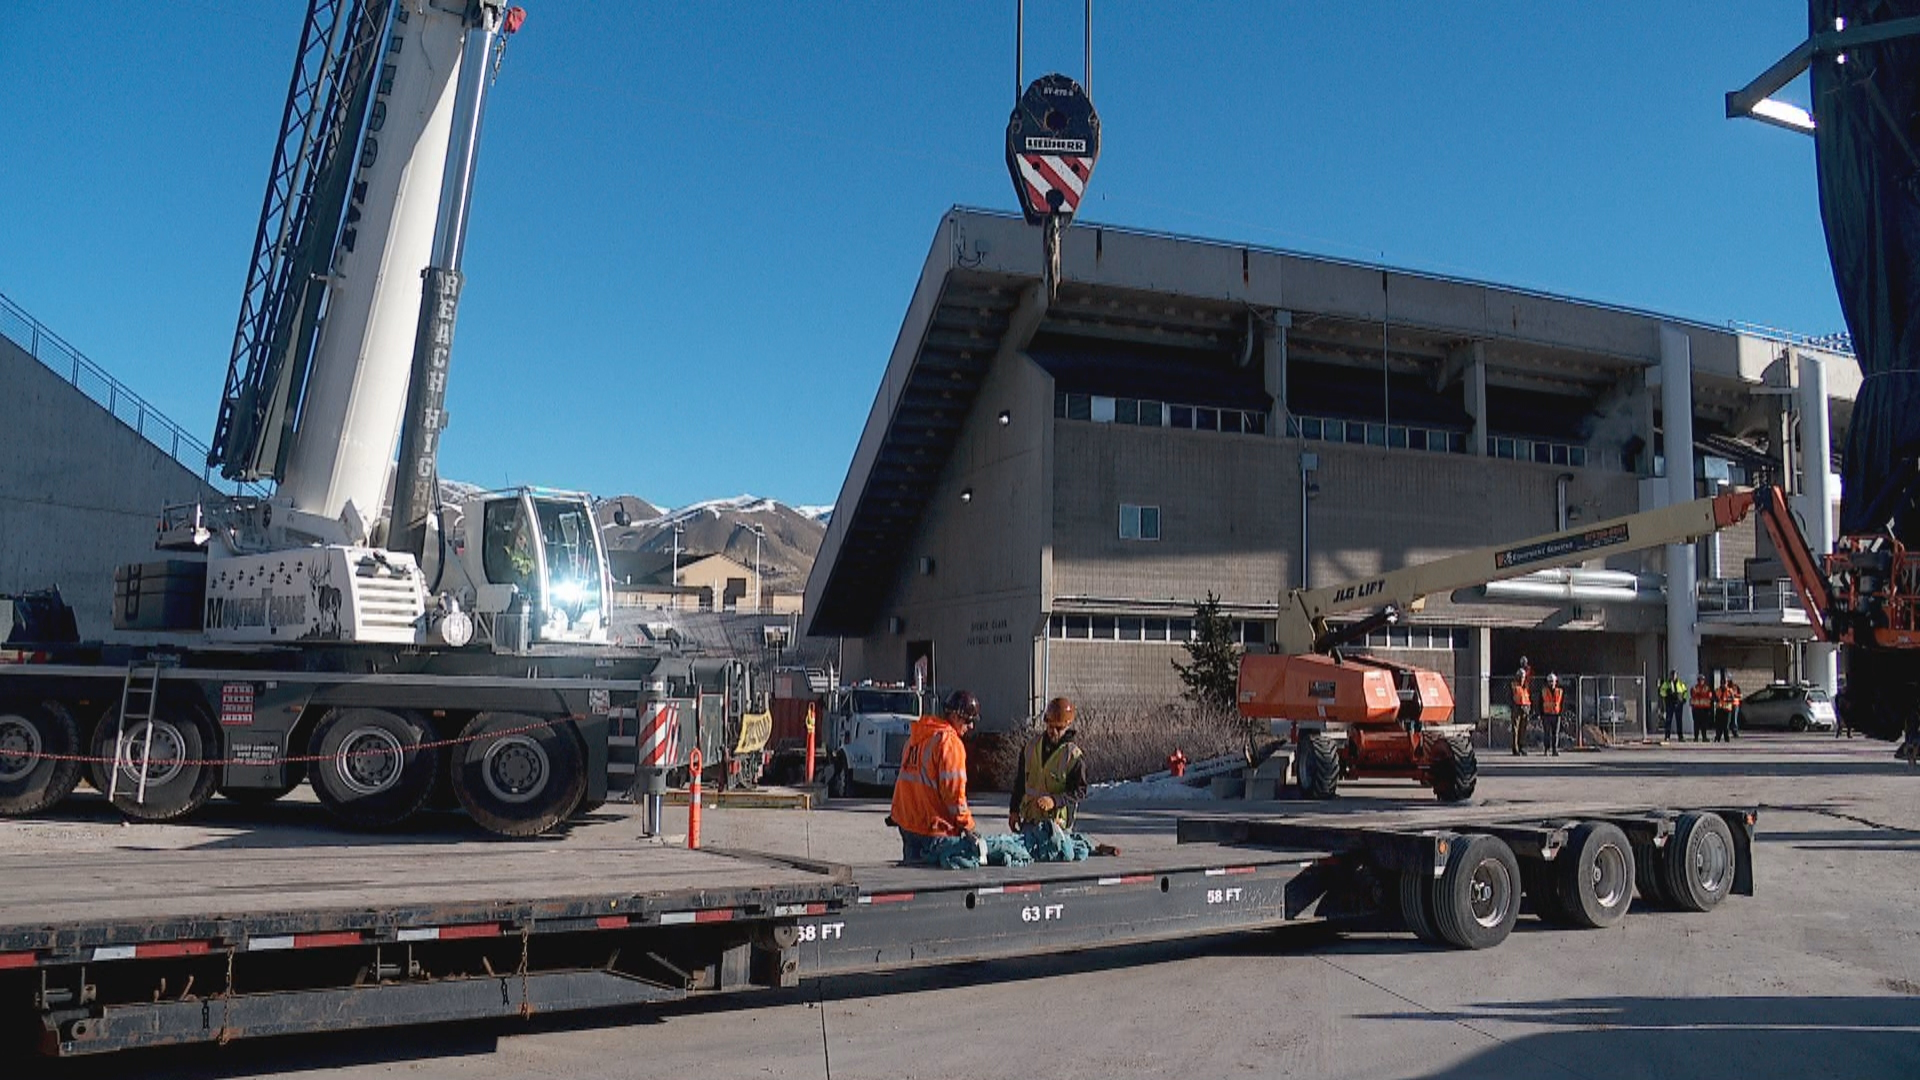 Olympic cauldron set for relocation, refurbishment (Photo: KUTV)